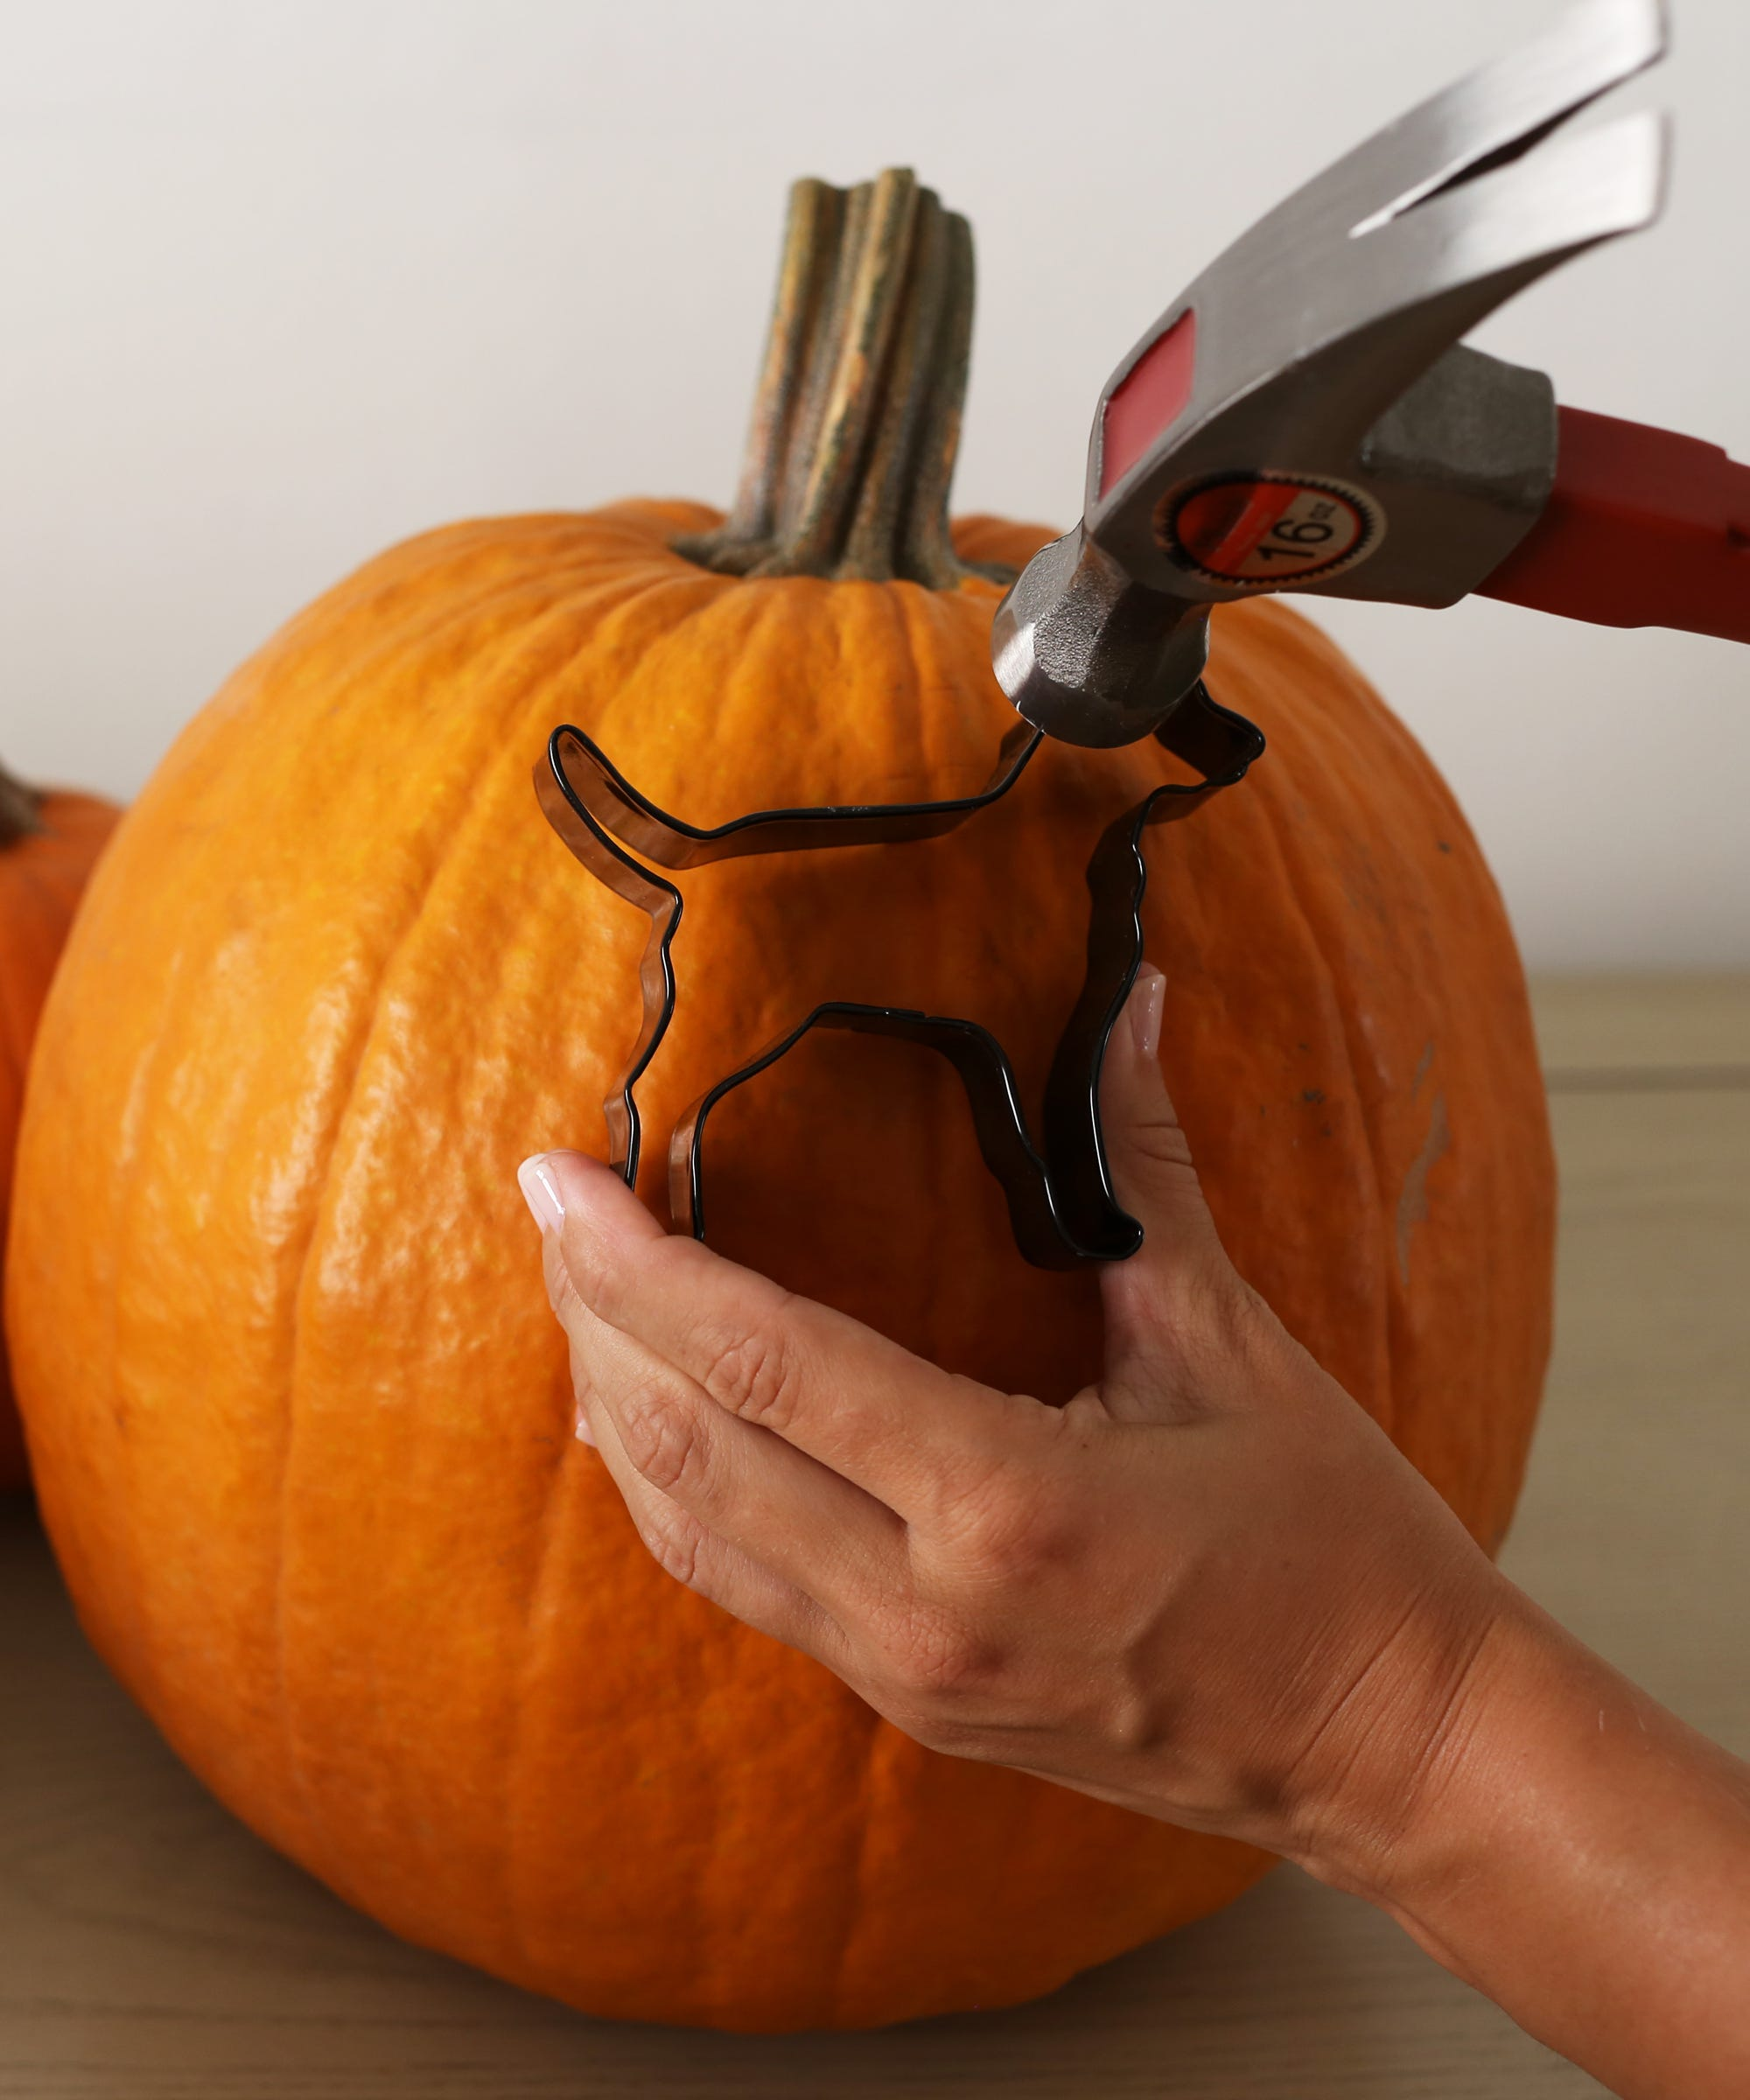 pumpkin carving hacks - Carving Pumpkin Ideas